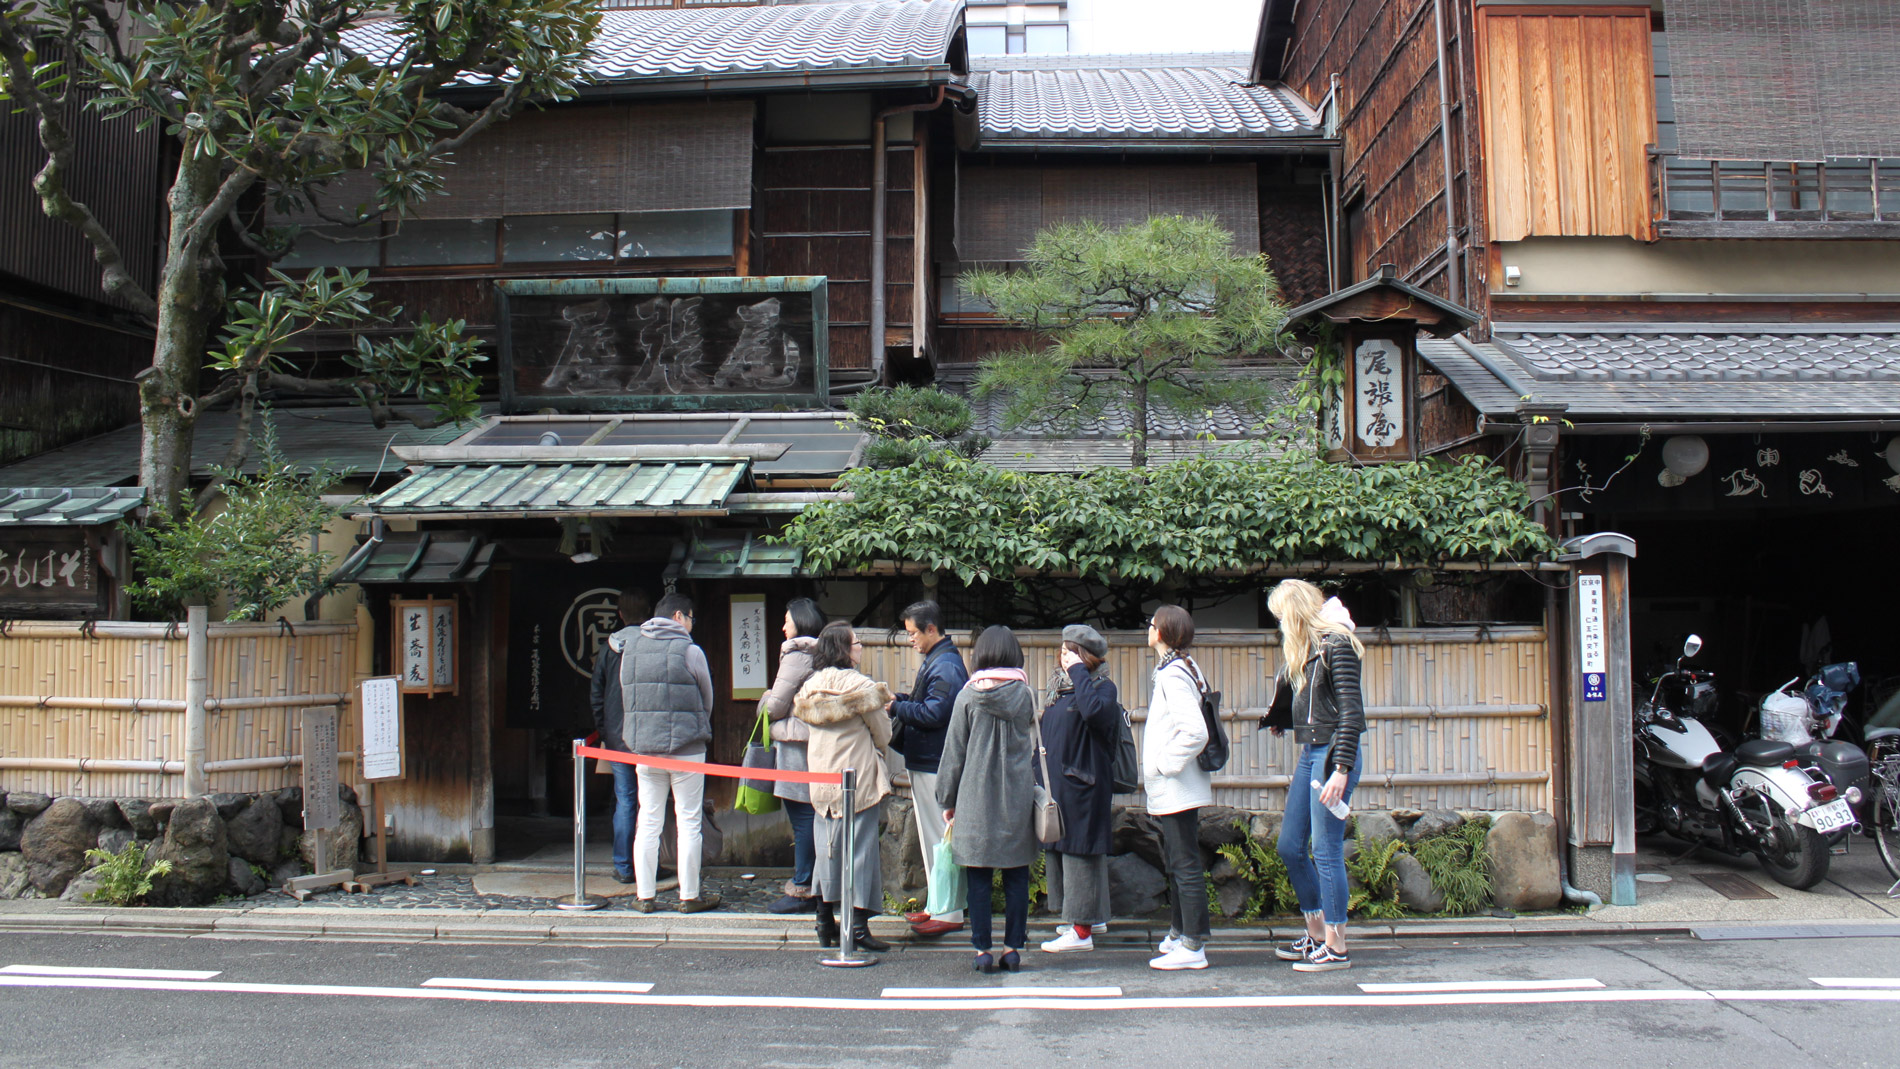 Where to Eat on the Cheap in Kyoto